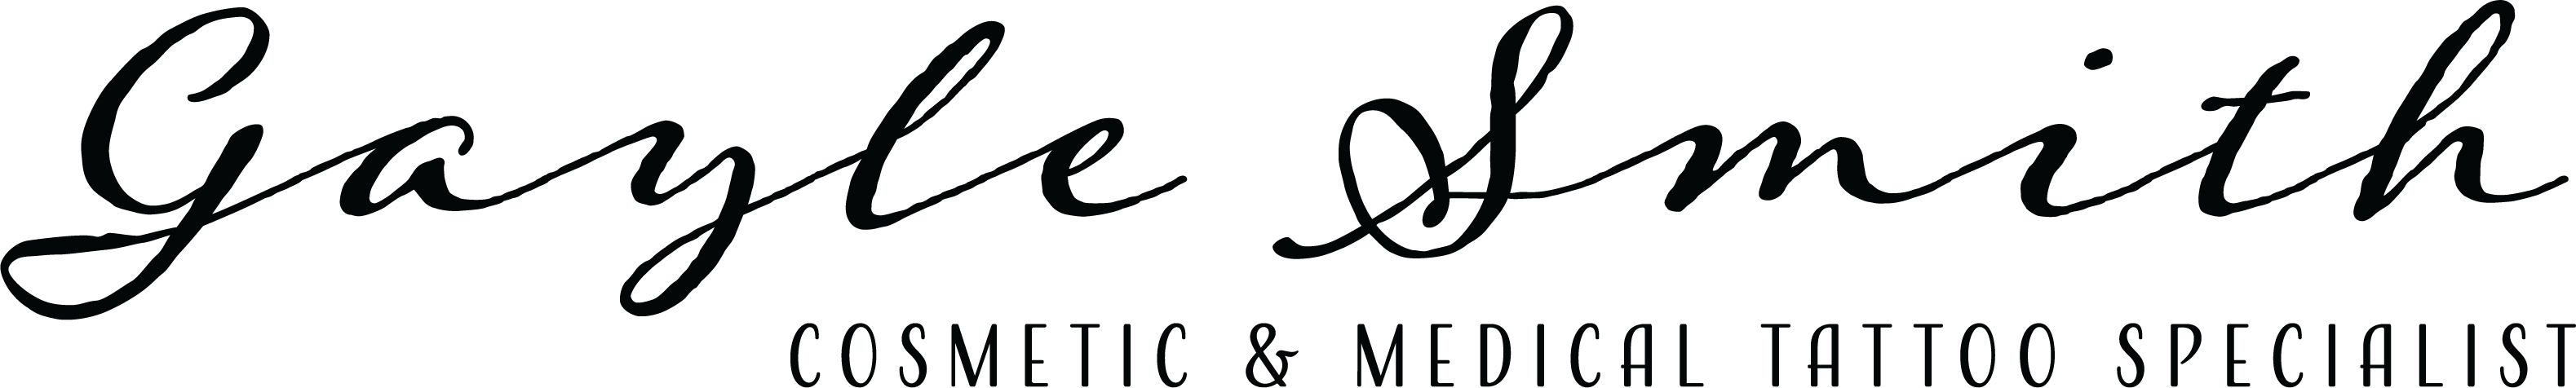 Gayle Smith - Cosmetic and Medical Tattoo Logo